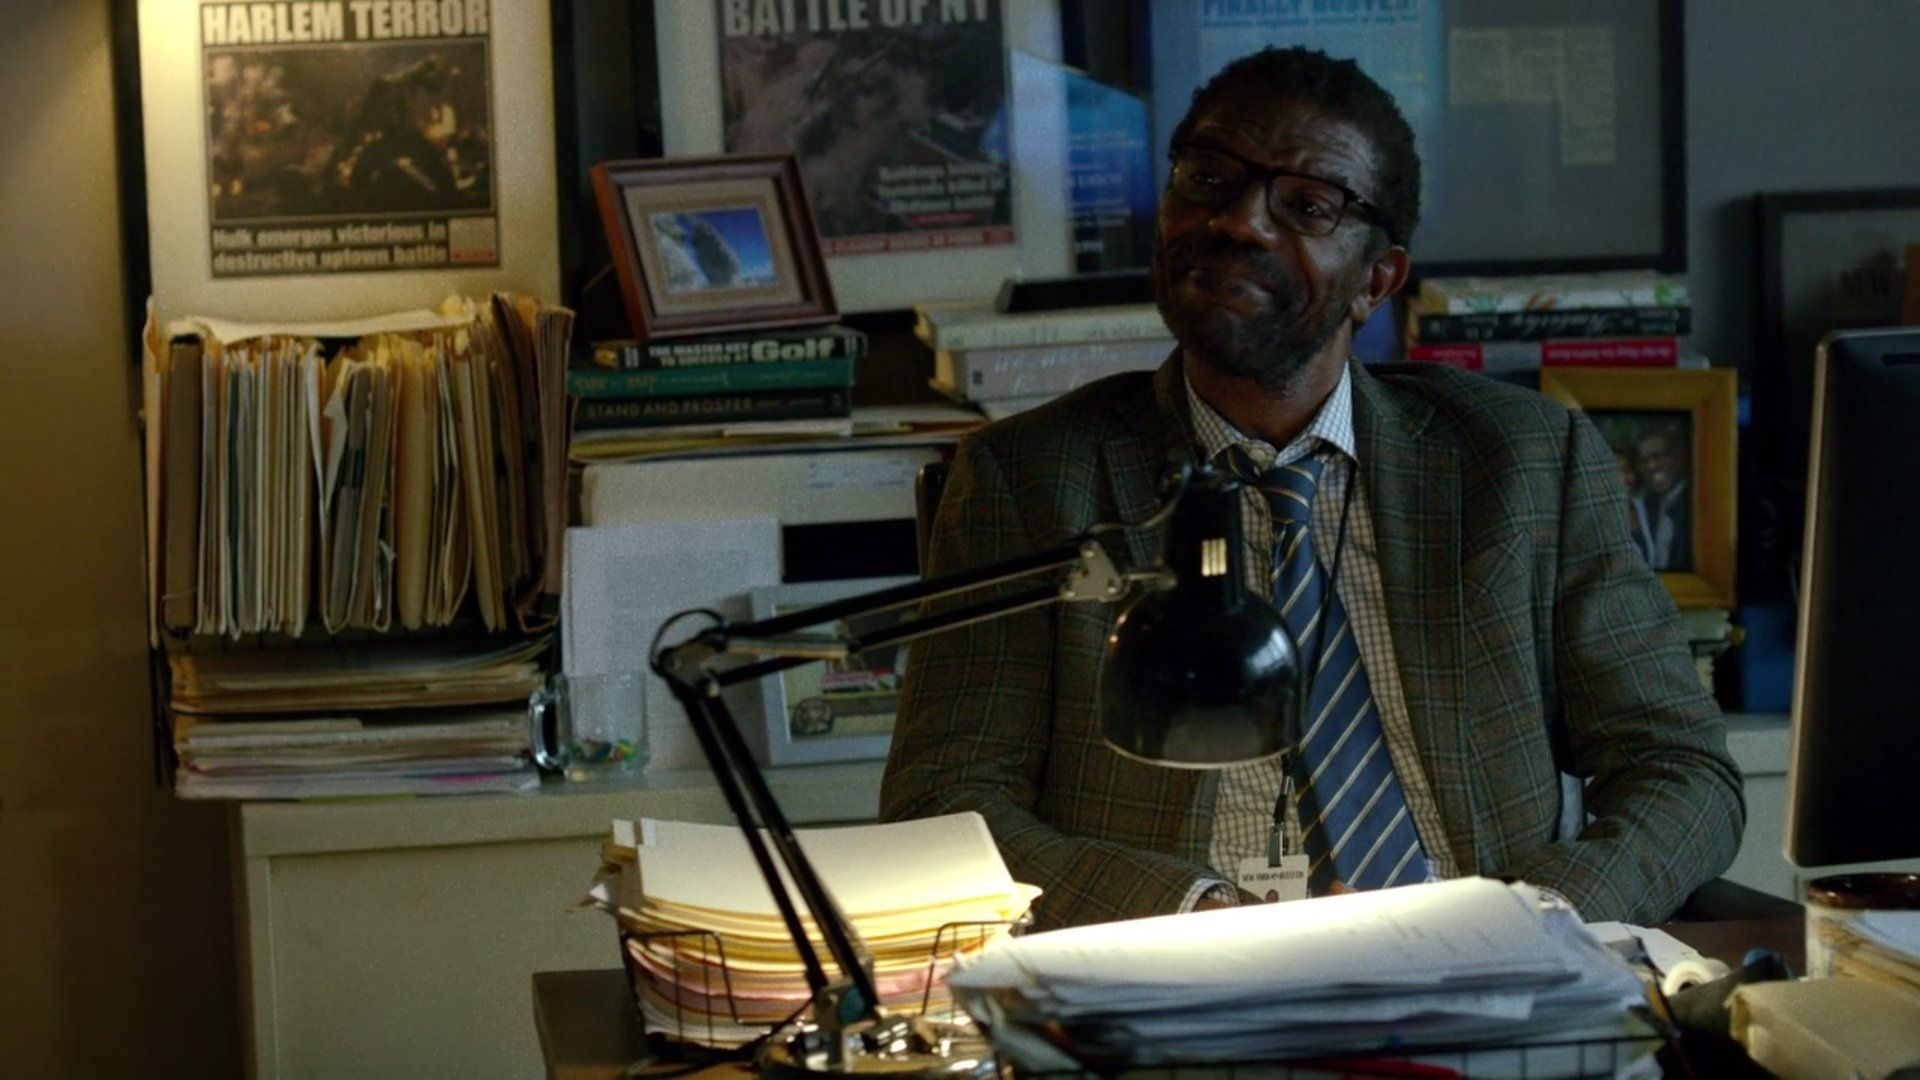 Ben urich une new york bulletin desk Terror in harlem 2 daredevil easter egg series 110 pix geeks